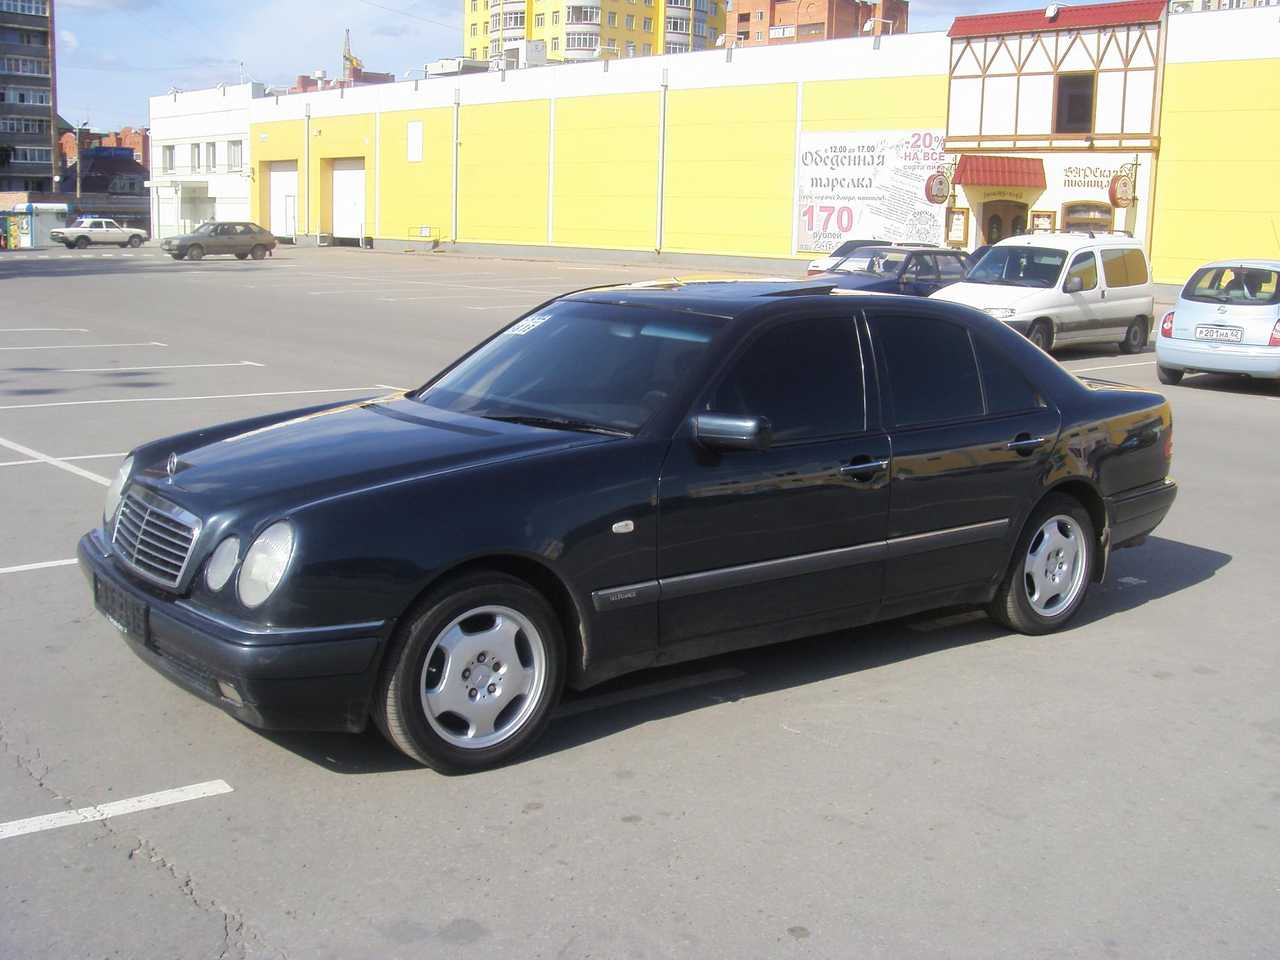 1999 mercedes benz e class pictures gasoline fr or rr automatic for sale. Black Bedroom Furniture Sets. Home Design Ideas